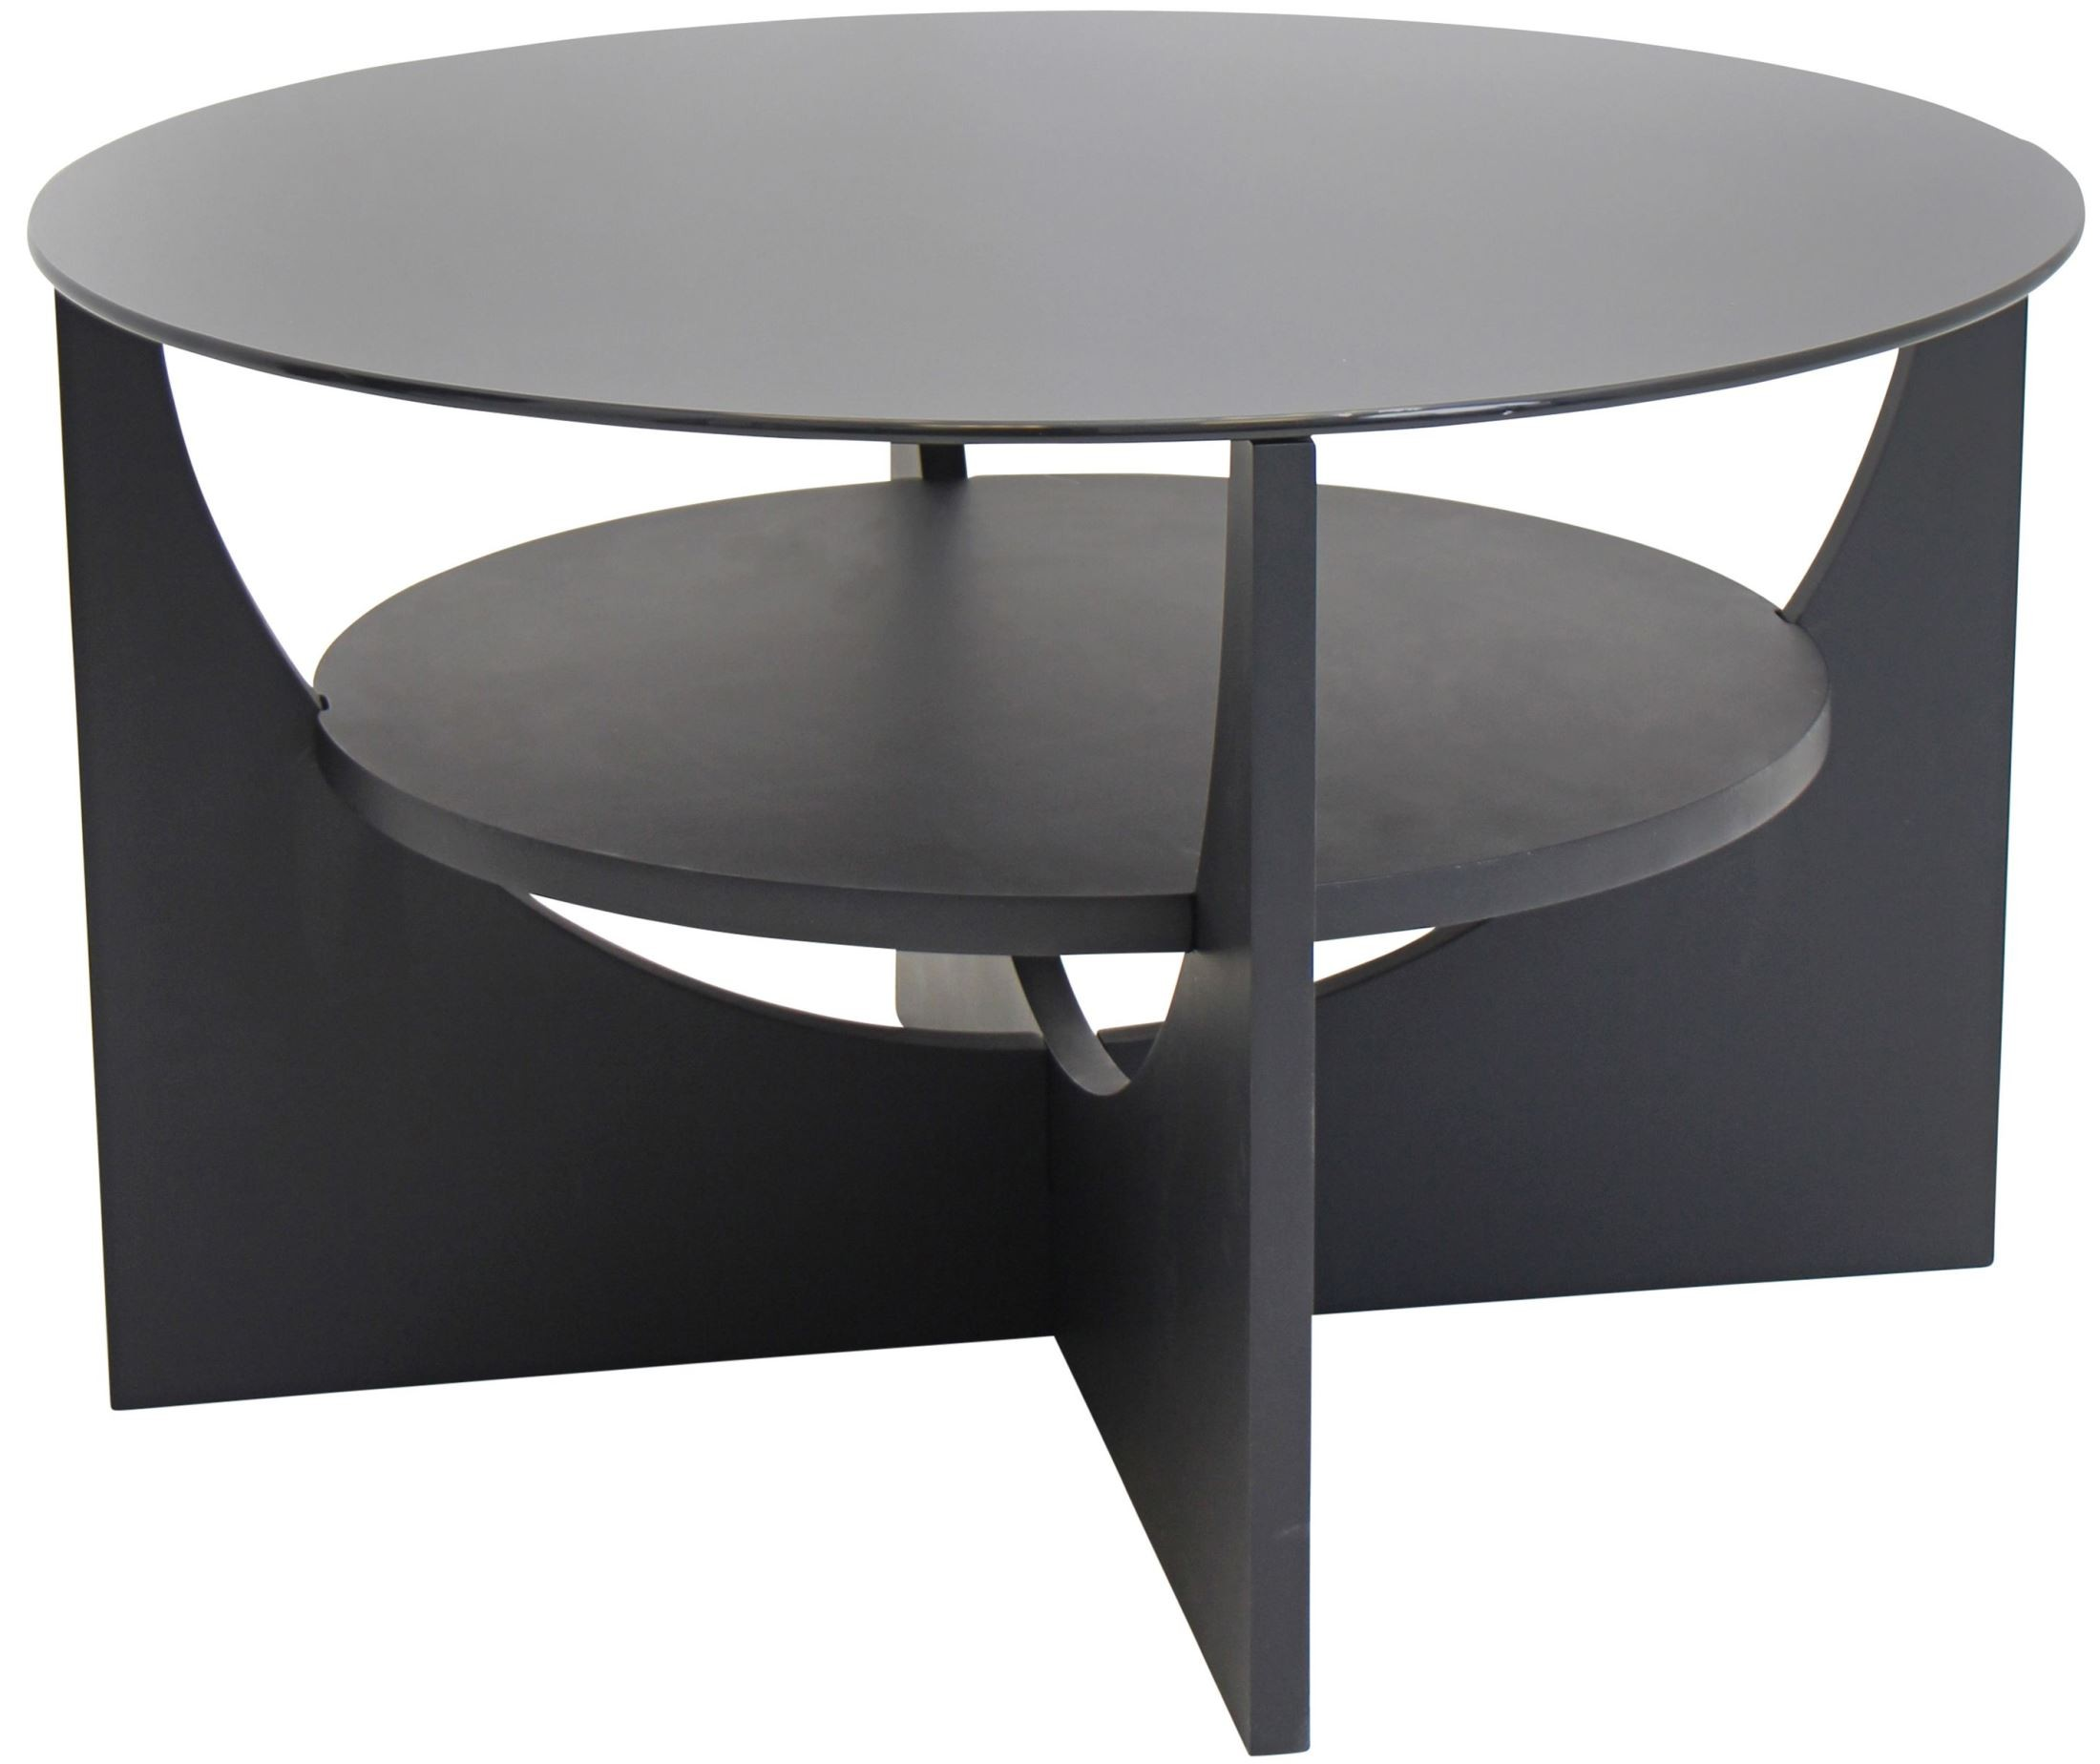 U shaped wenge coffee table from lumisource tb ctu wng coleman furniture Wenge coffee tables